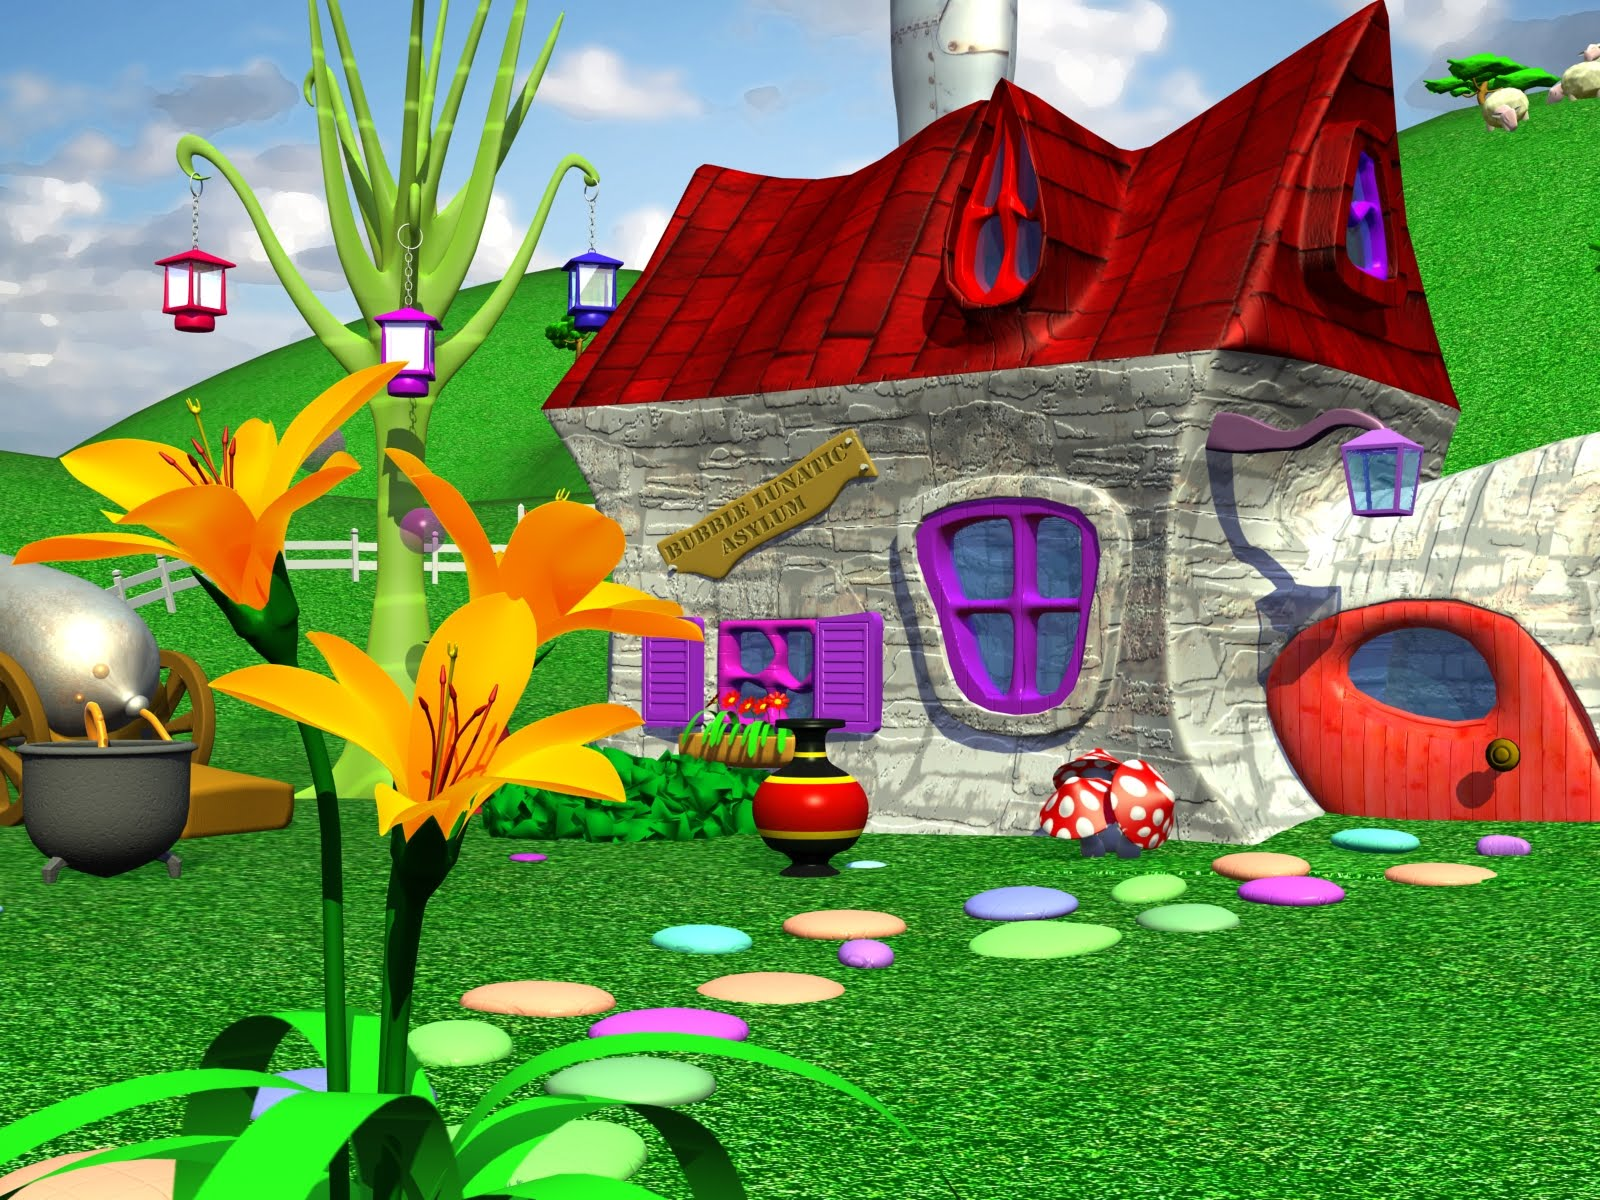 Univers createur creation d 39 une maison cartoon sur 3d for Creation maison 3d